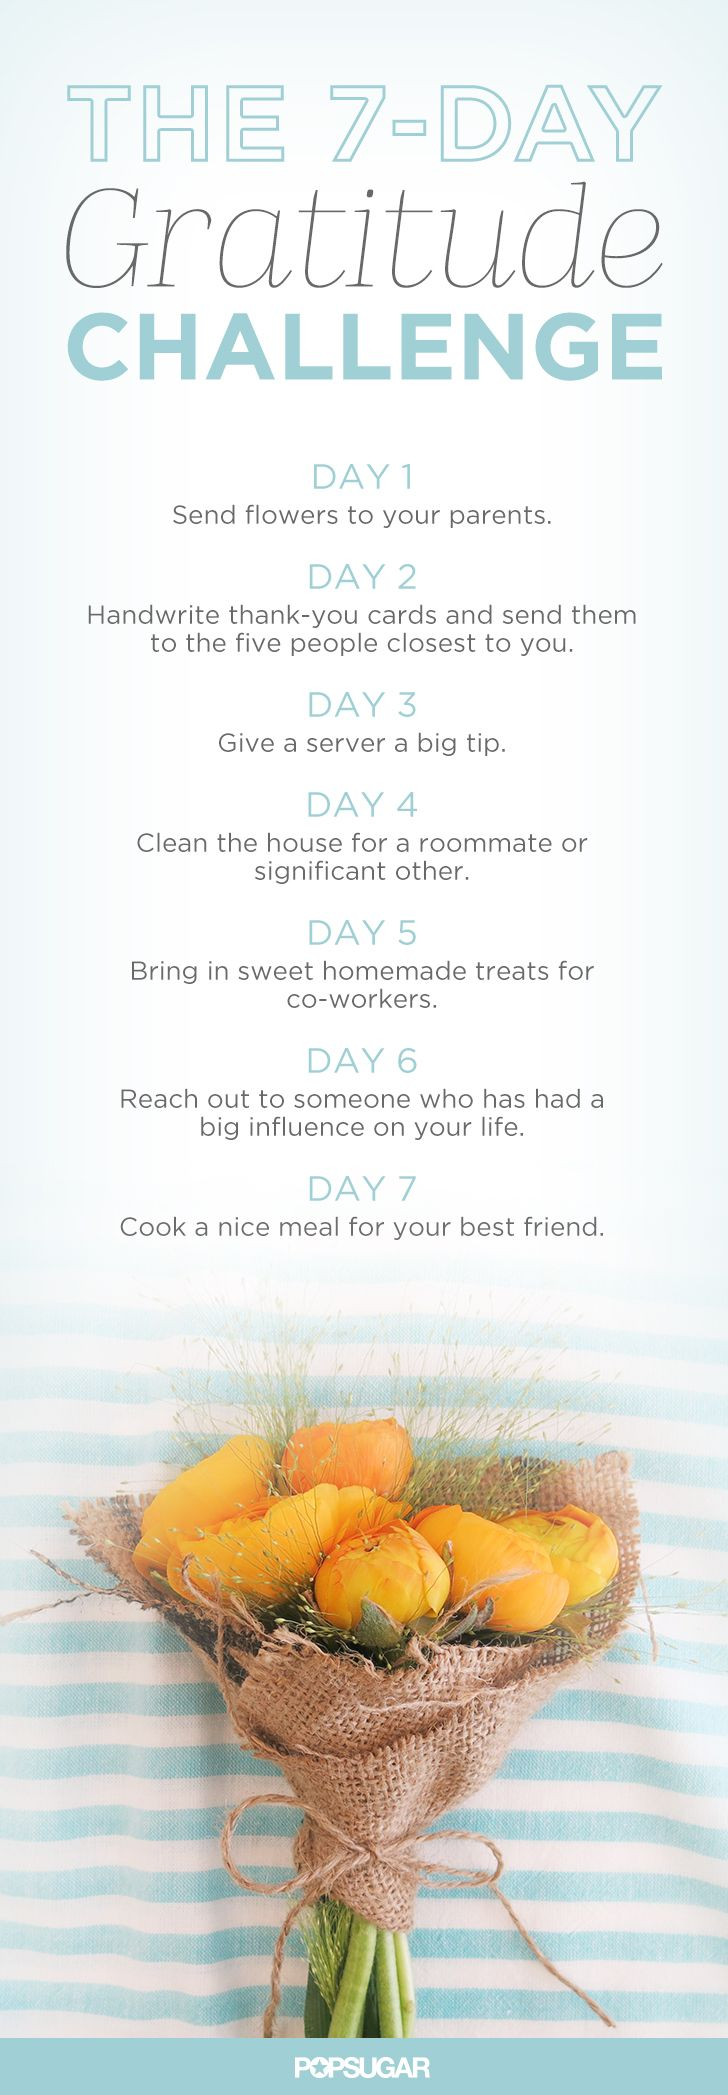 We've created a challenge designed to help you show your gratitude to the ones who have positively impacted your life. From your closest family members to the smiling server who makes your coffee every morning, here's how to give thanks seven days straight.